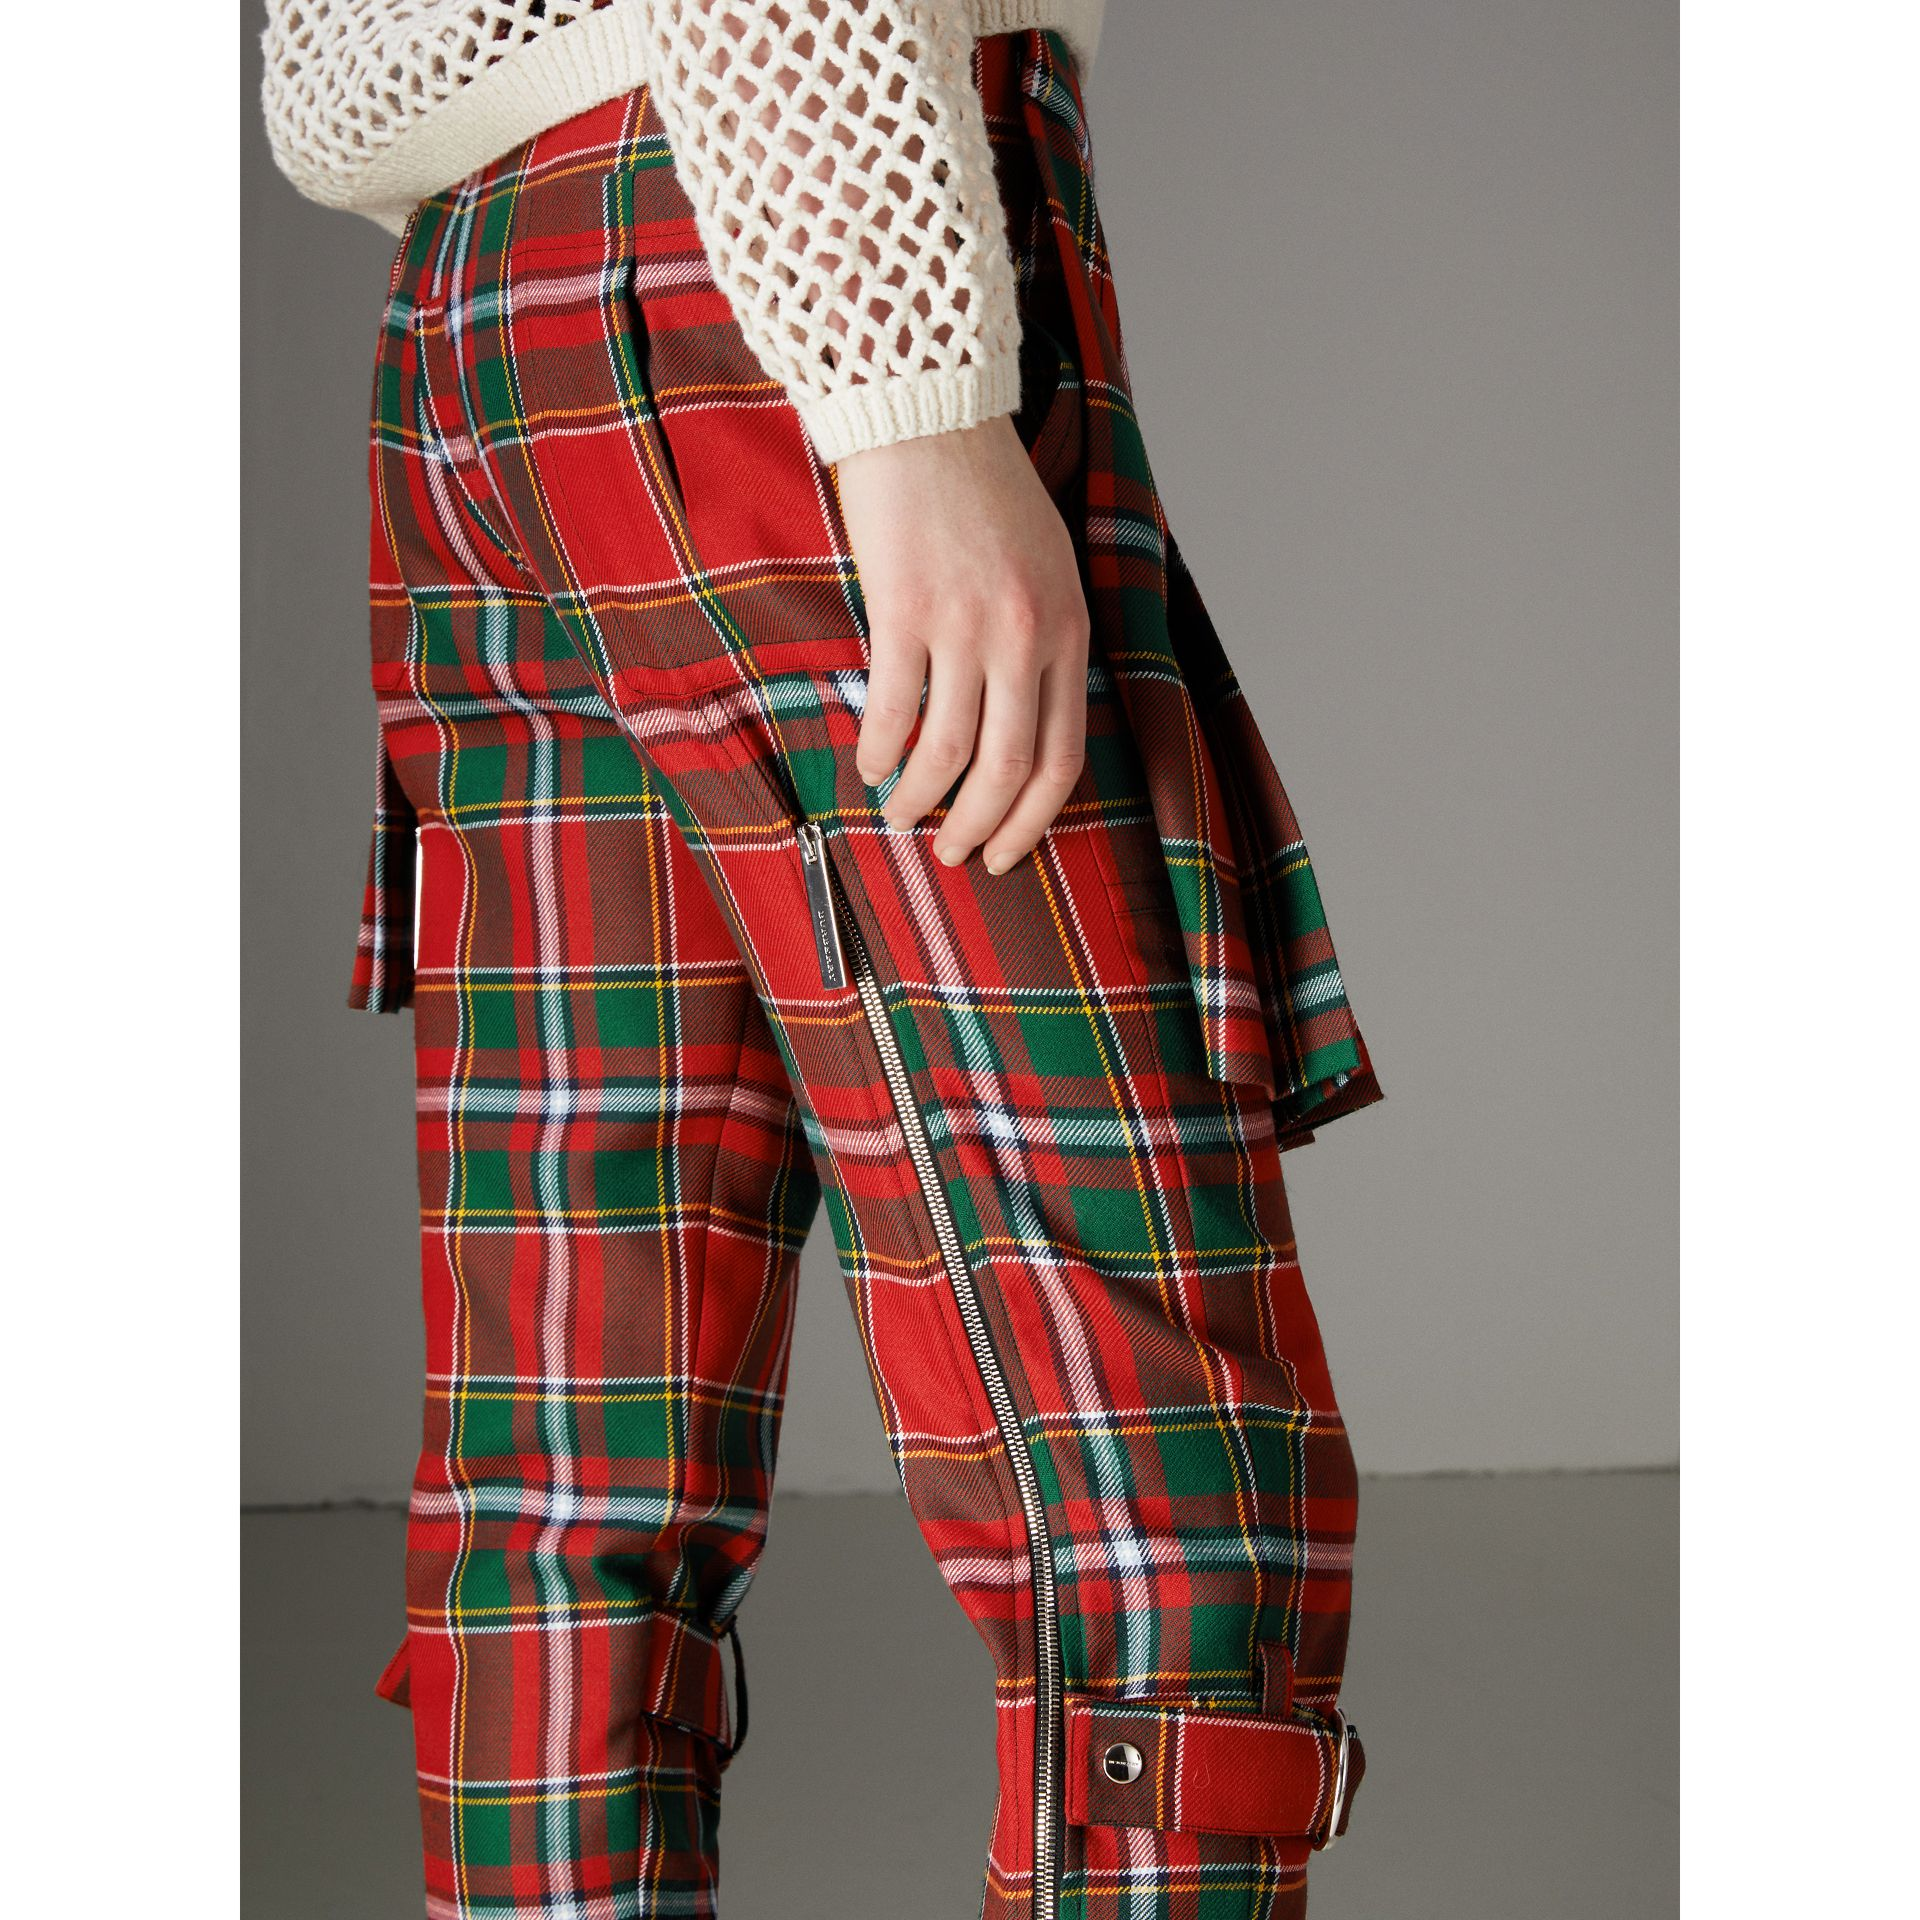 Pantalon punk en tartan Modern Stewart Royal (Rouge Vif) - Femme | Burberry - photo de la galerie 1